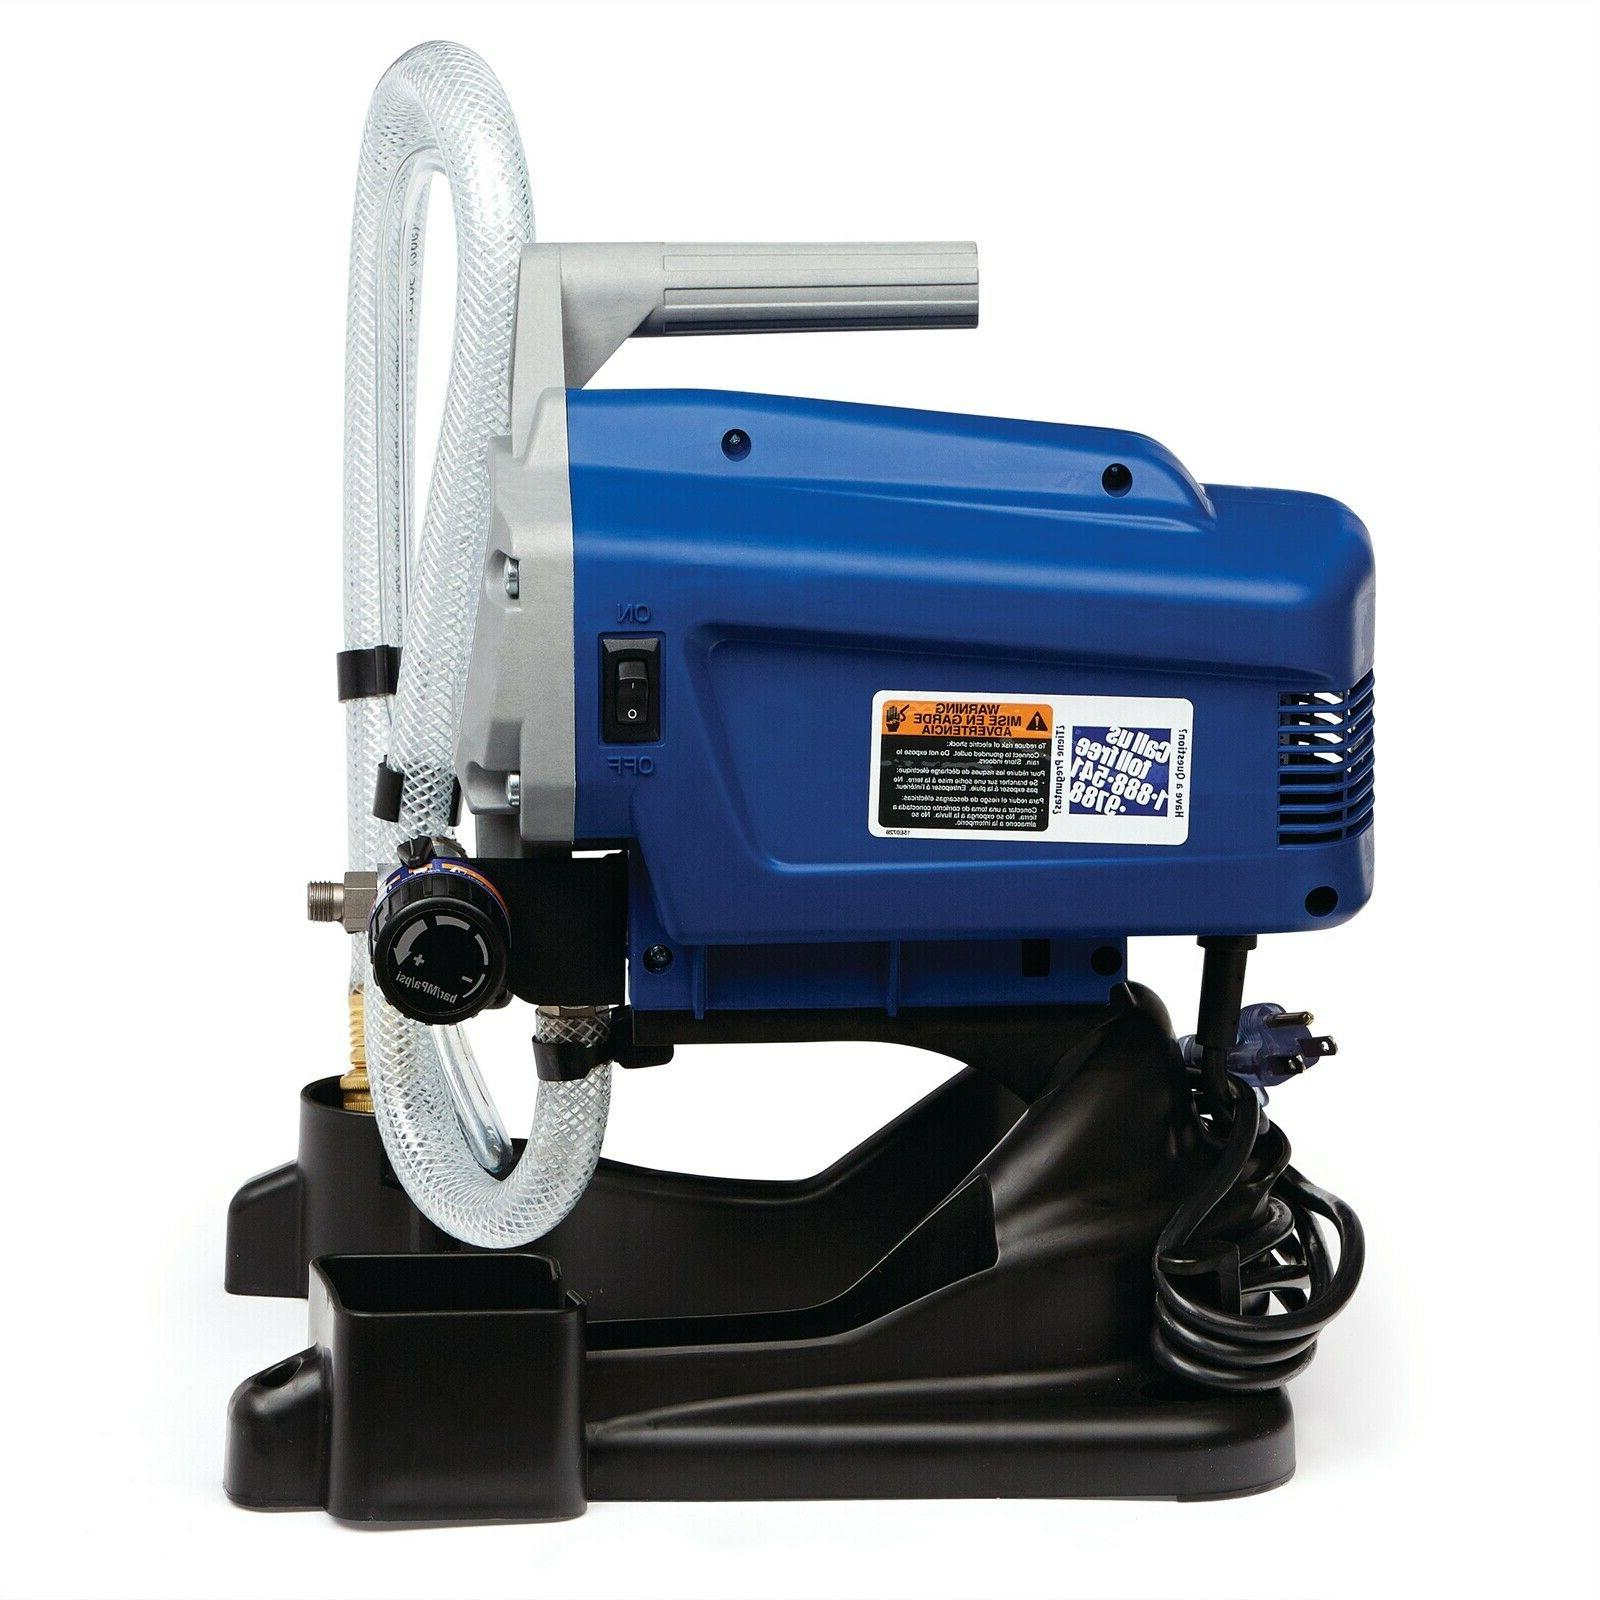 Graco Painter Plus 1-year Warranty Refurb